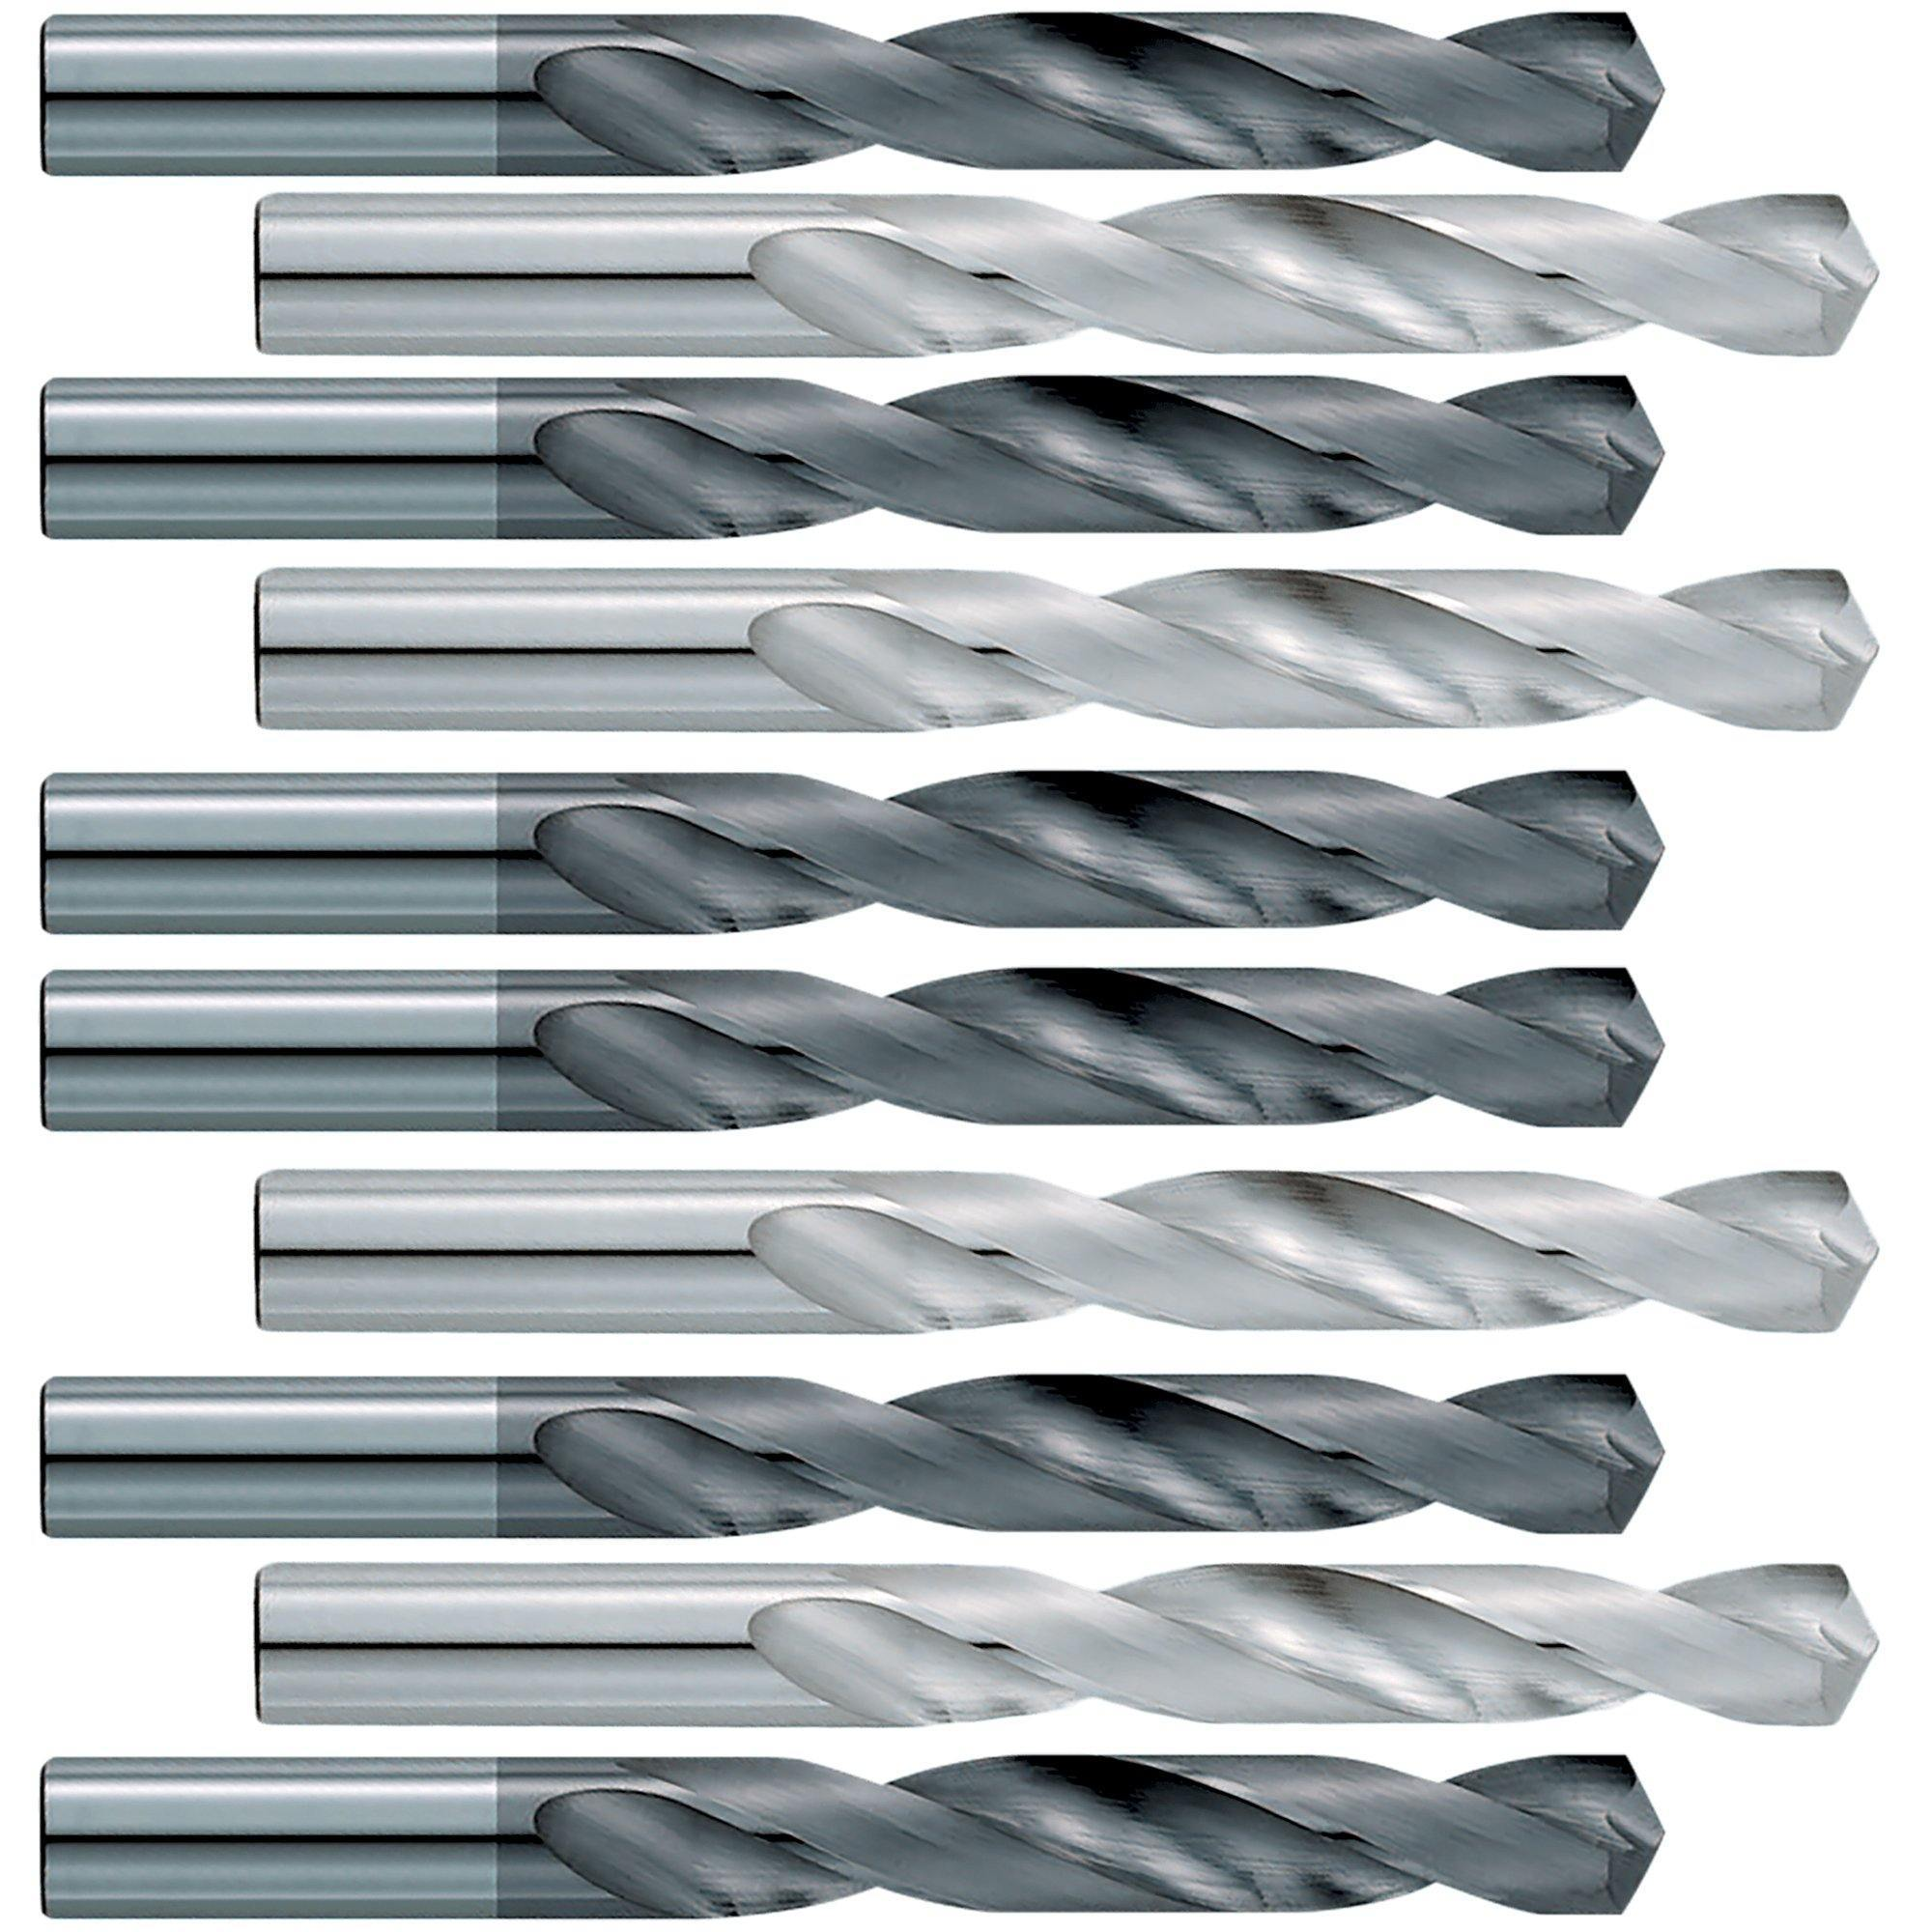 #45  (10 Pack)  .082 Jobber Length Carbide Drill Bits - End Mill Store